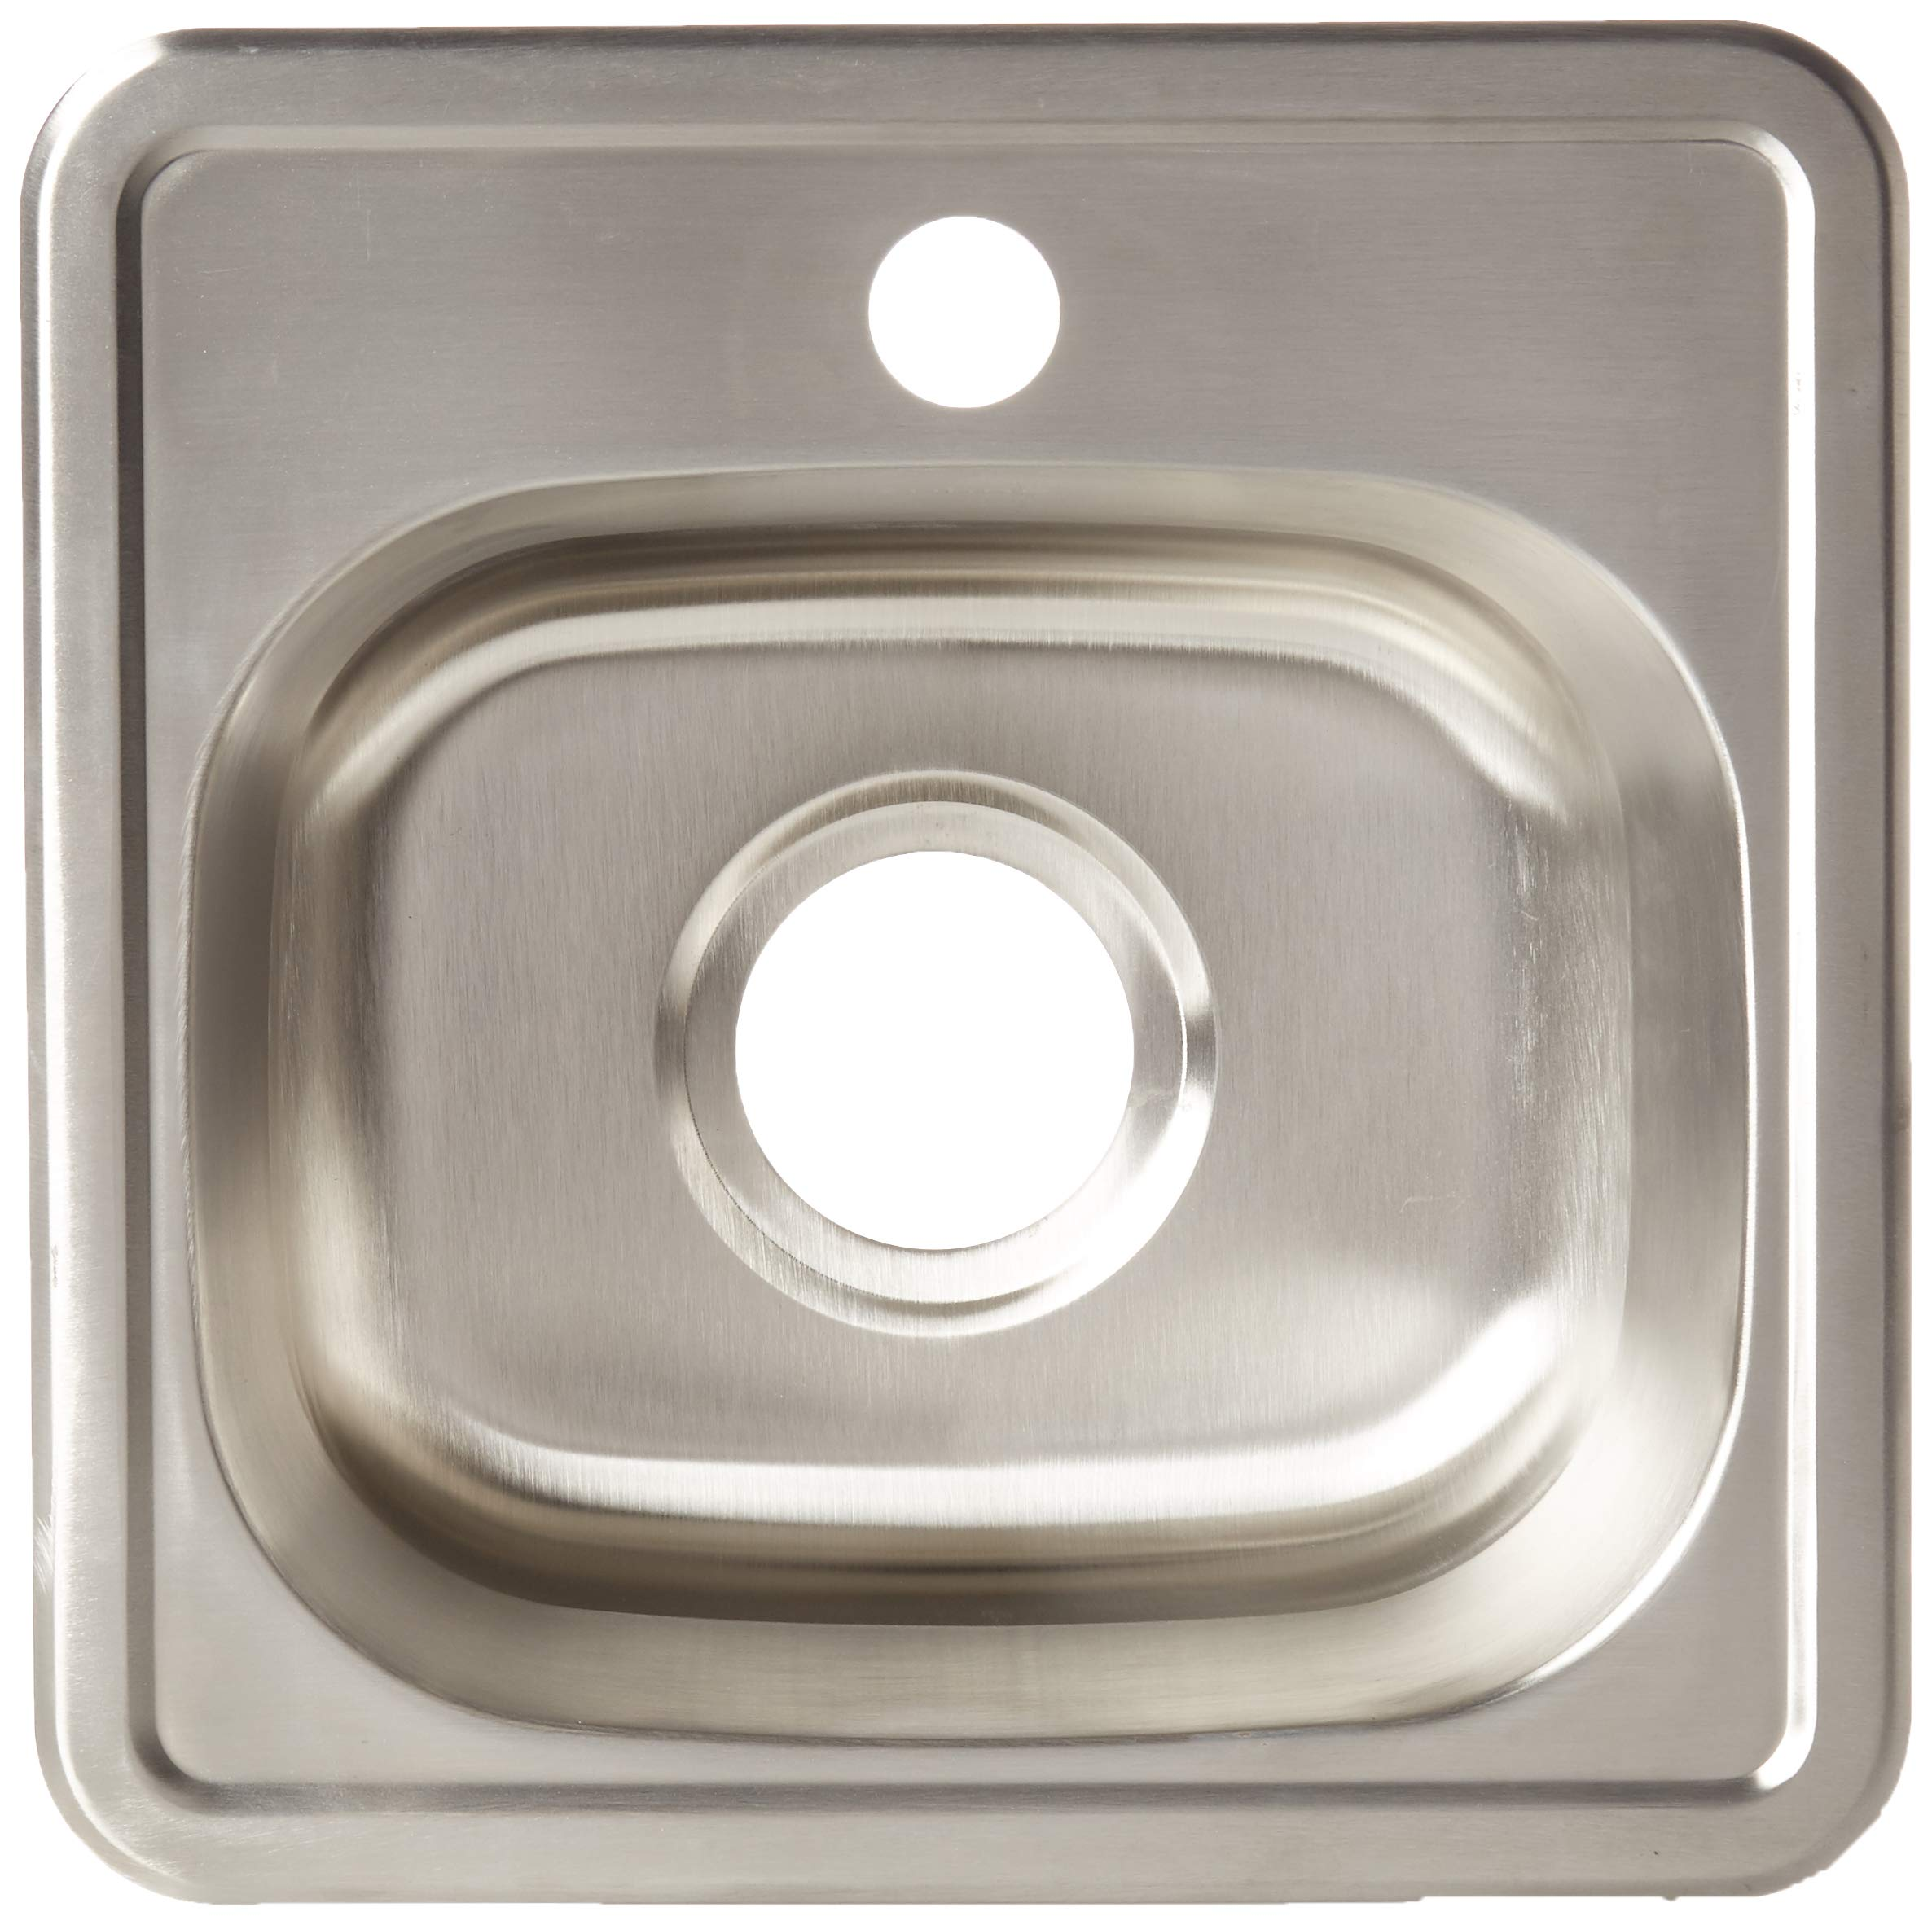 ZUHNE Drop-In Top Mount or Over Mount One Deck Hole Single and Double Bowl Stainless Steel Kitchen Sink (15x15 Single) by Zuhne (Image #2)